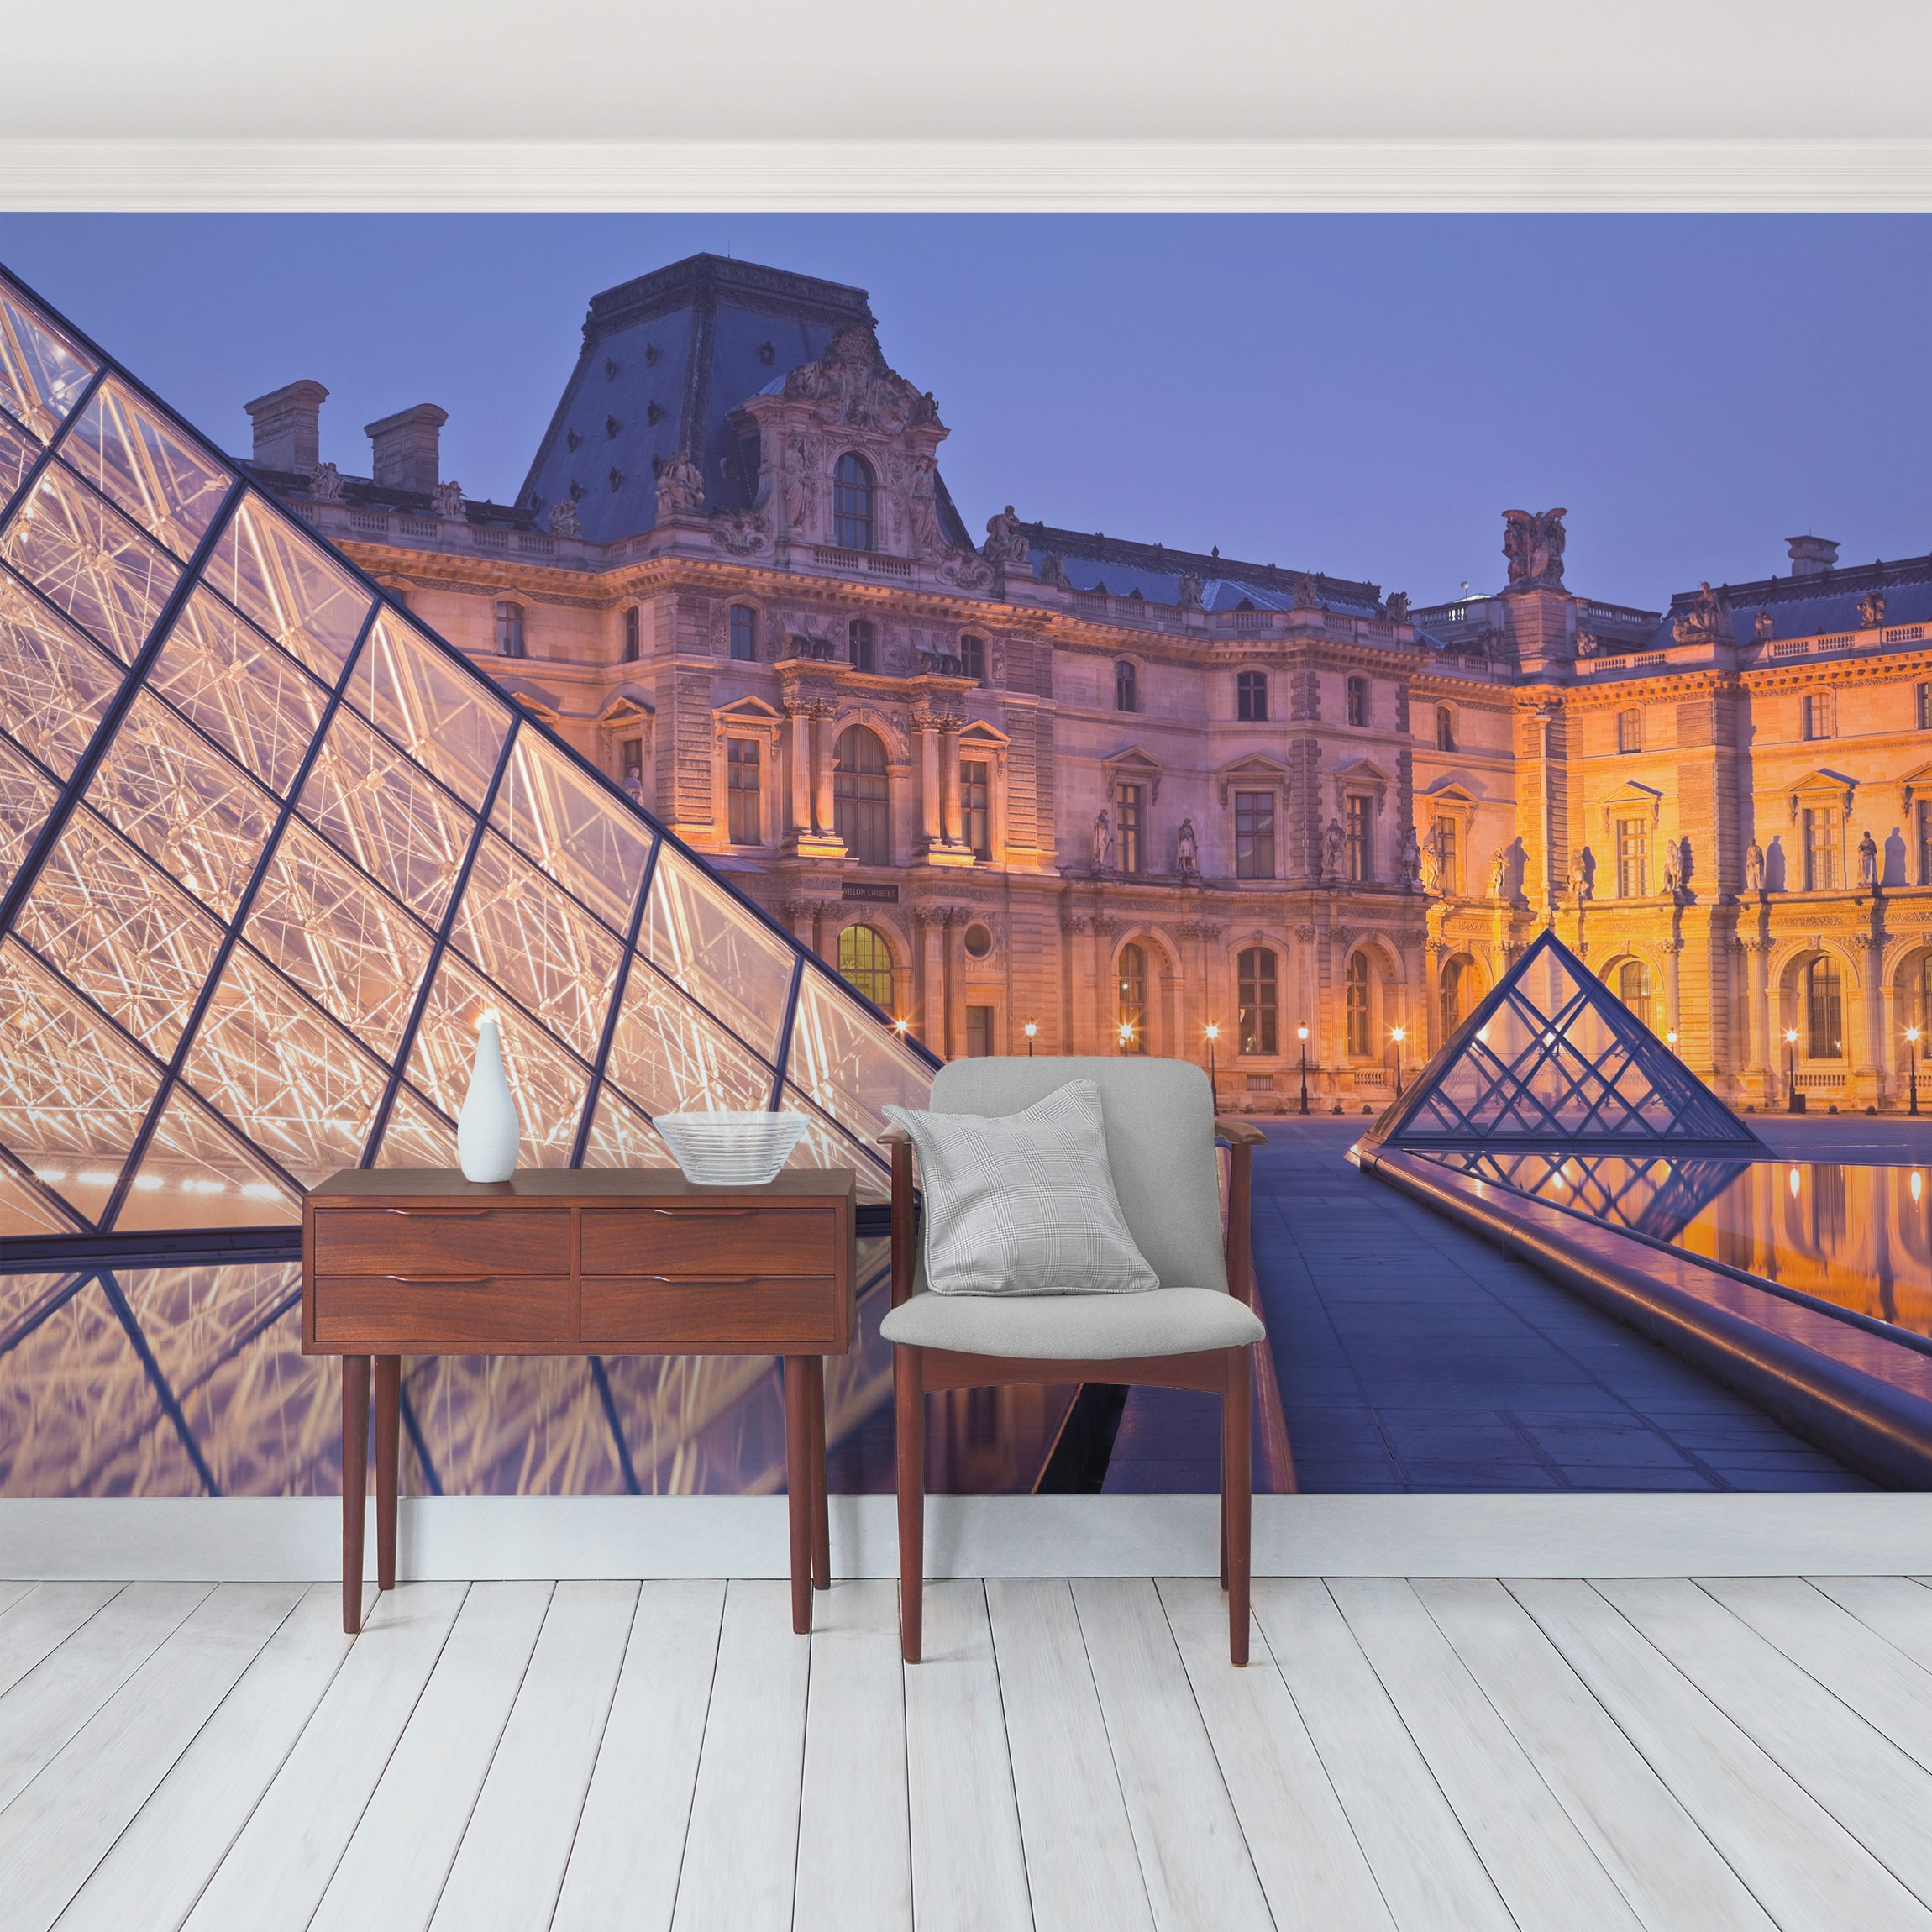 selbstklebende tapete fototapete louvre paris bei nacht. Black Bedroom Furniture Sets. Home Design Ideas